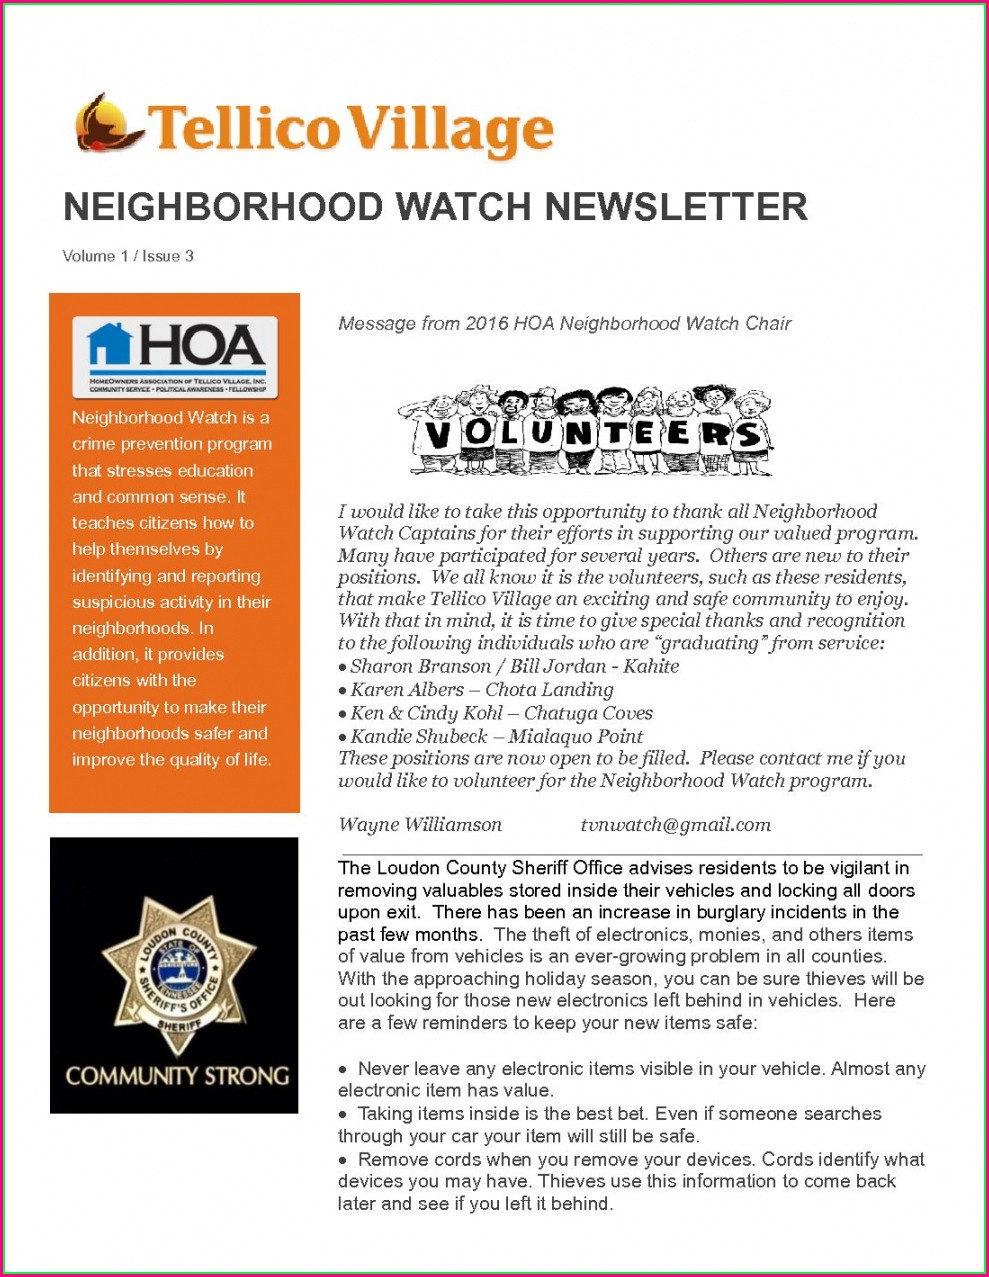 Homeowners Association Neighborhood Newsletter Templates